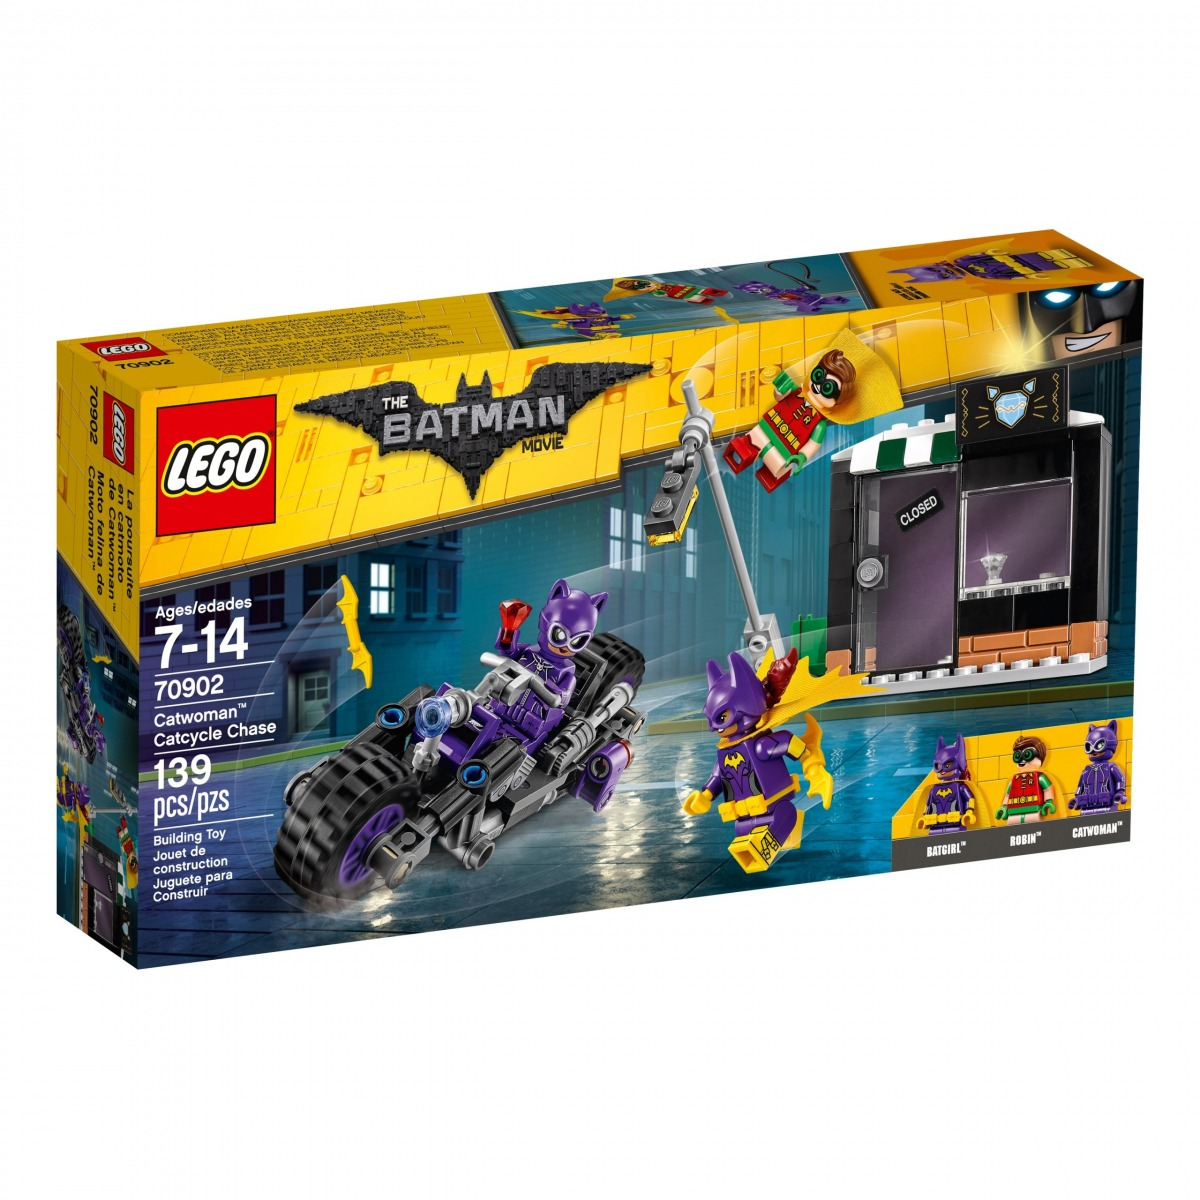 lego 70902 catwoman catcycle chase scaled